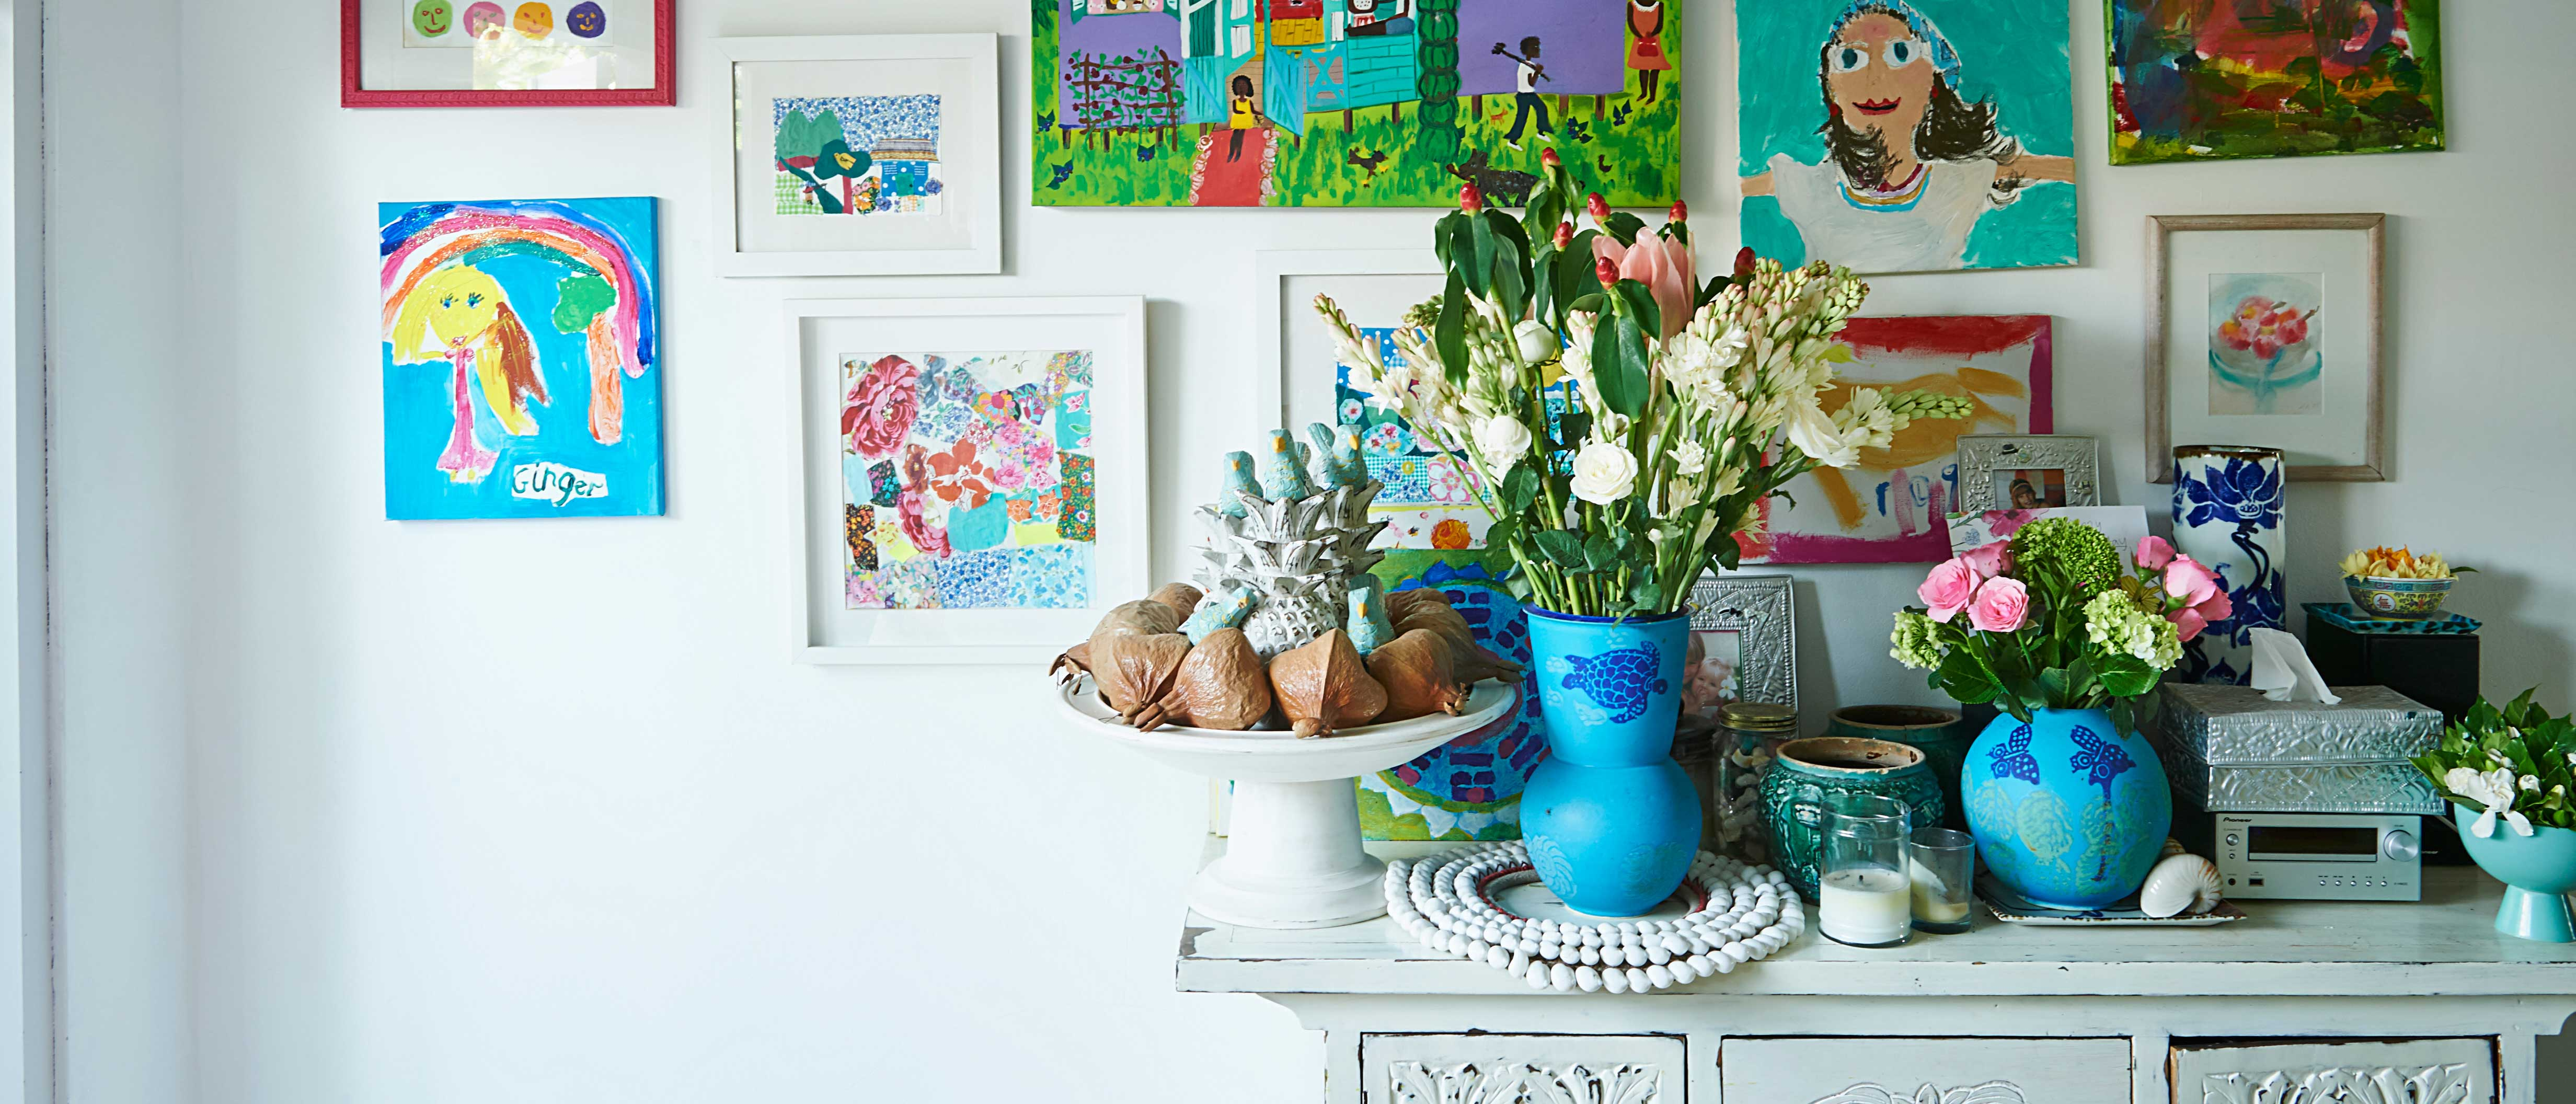 Gallery Walls With The Paradise Catcher's Emily Armstrong